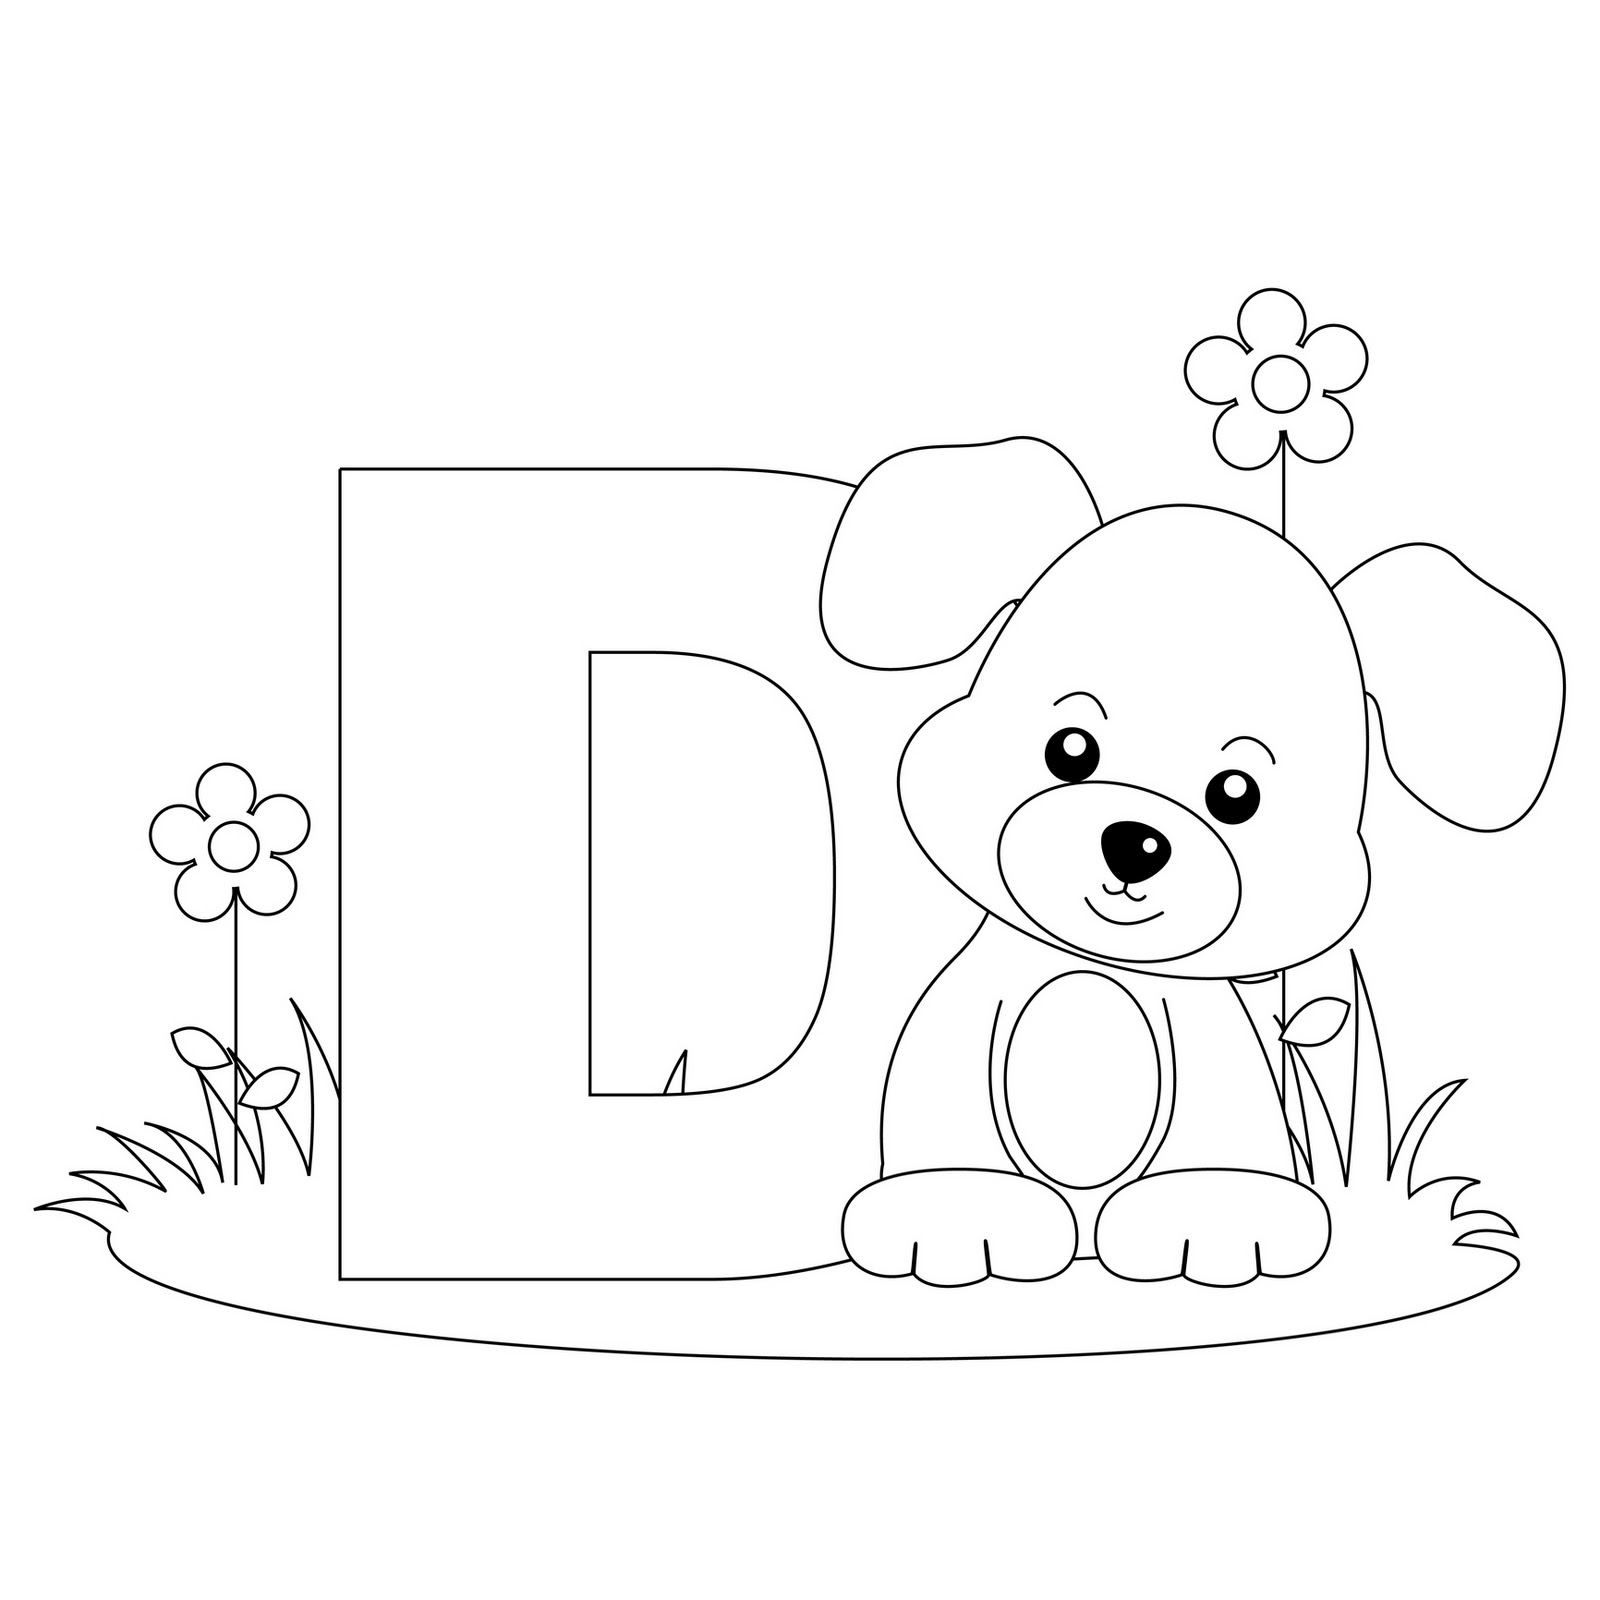 d letter coloring pages - photo #30